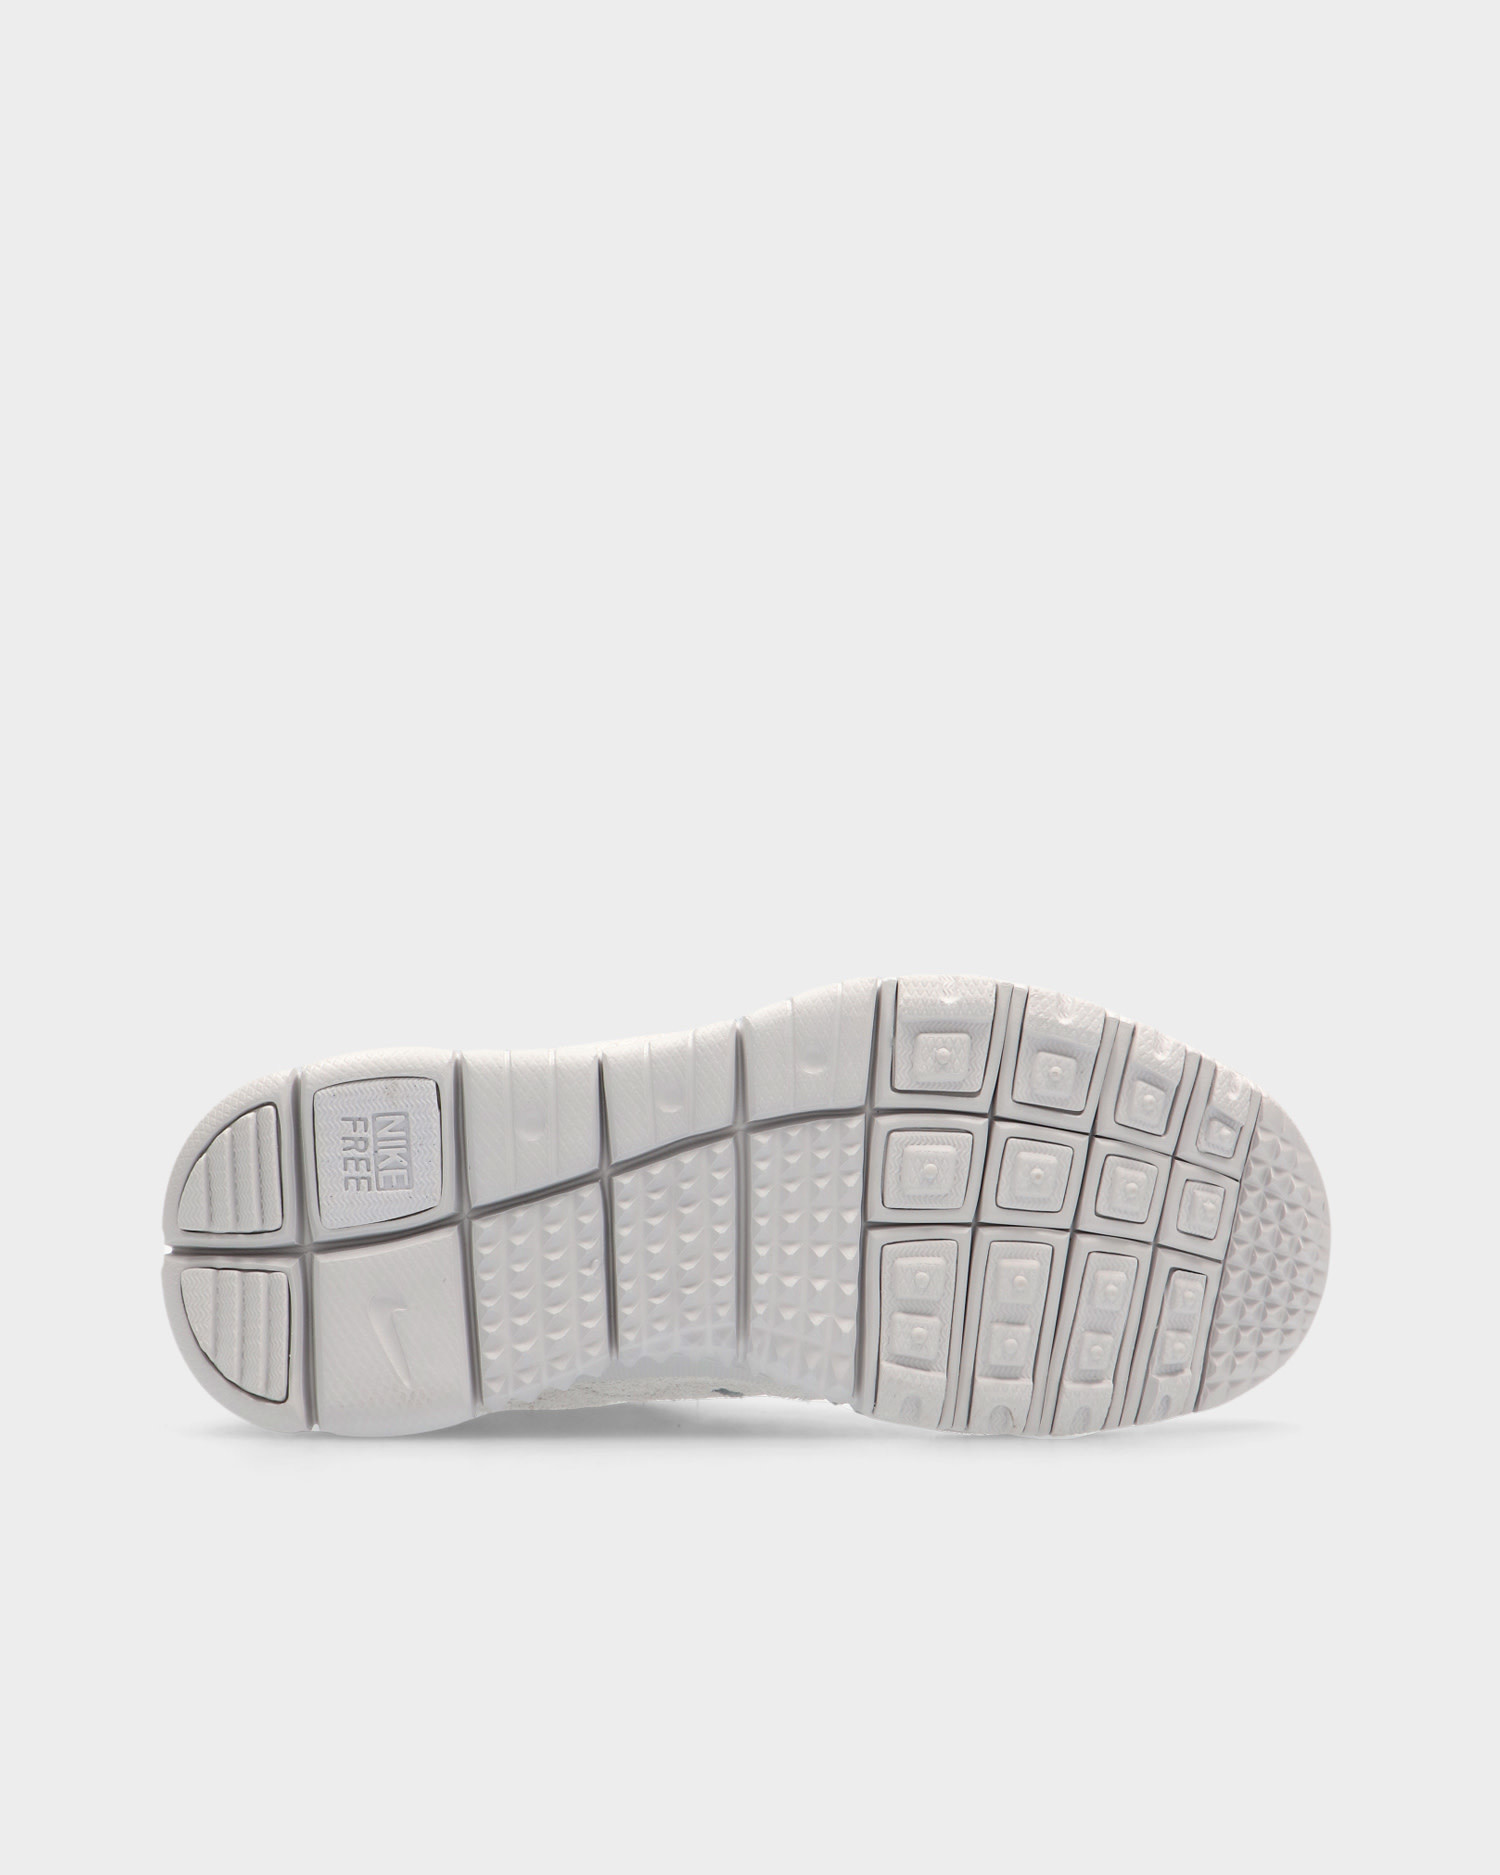 Nike Free Run Trail Neutral Grey/White-Summit White